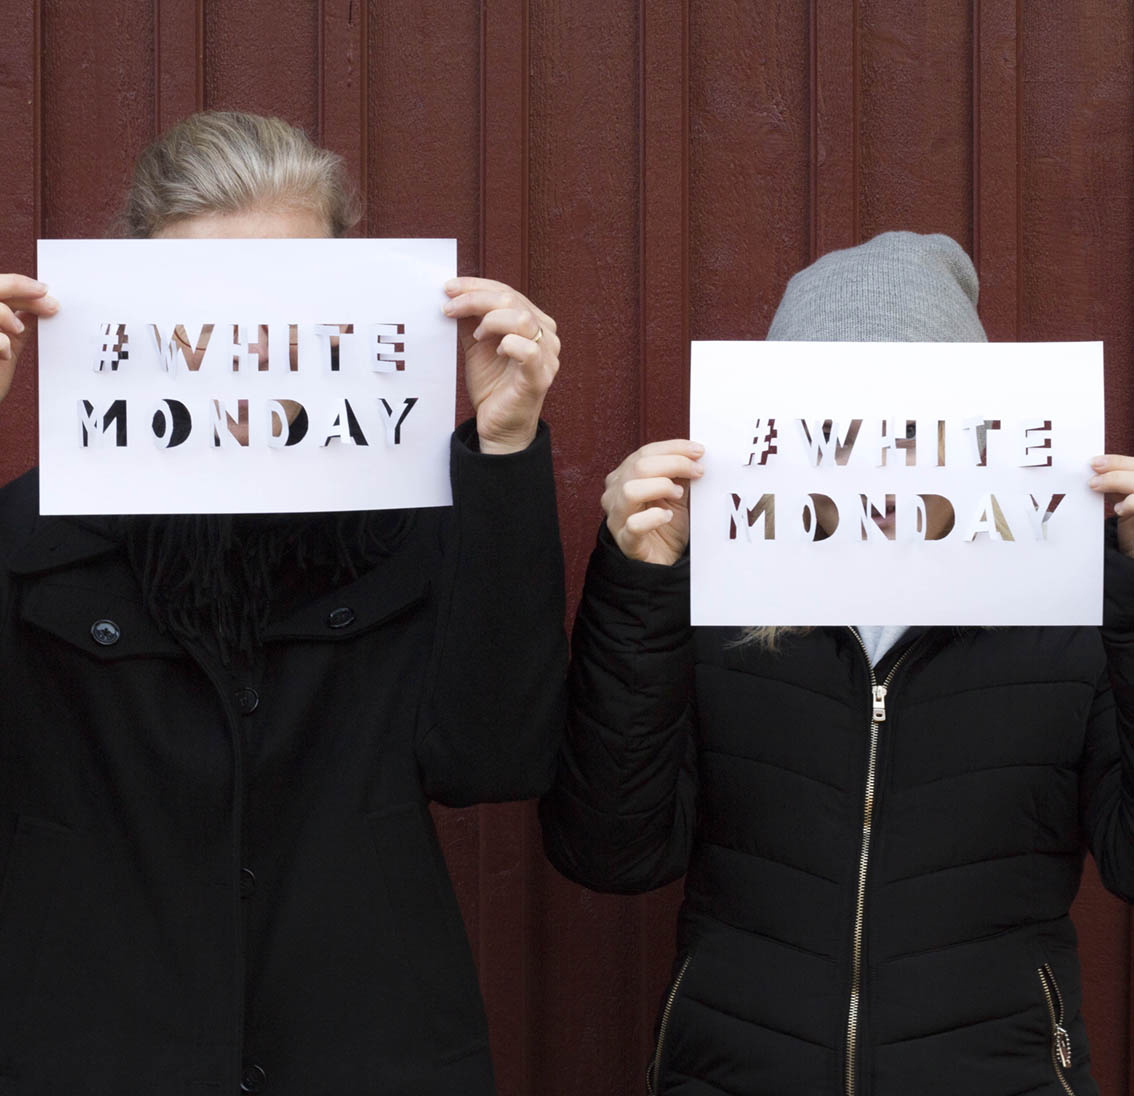 #whitemonday | Pysselbolaget